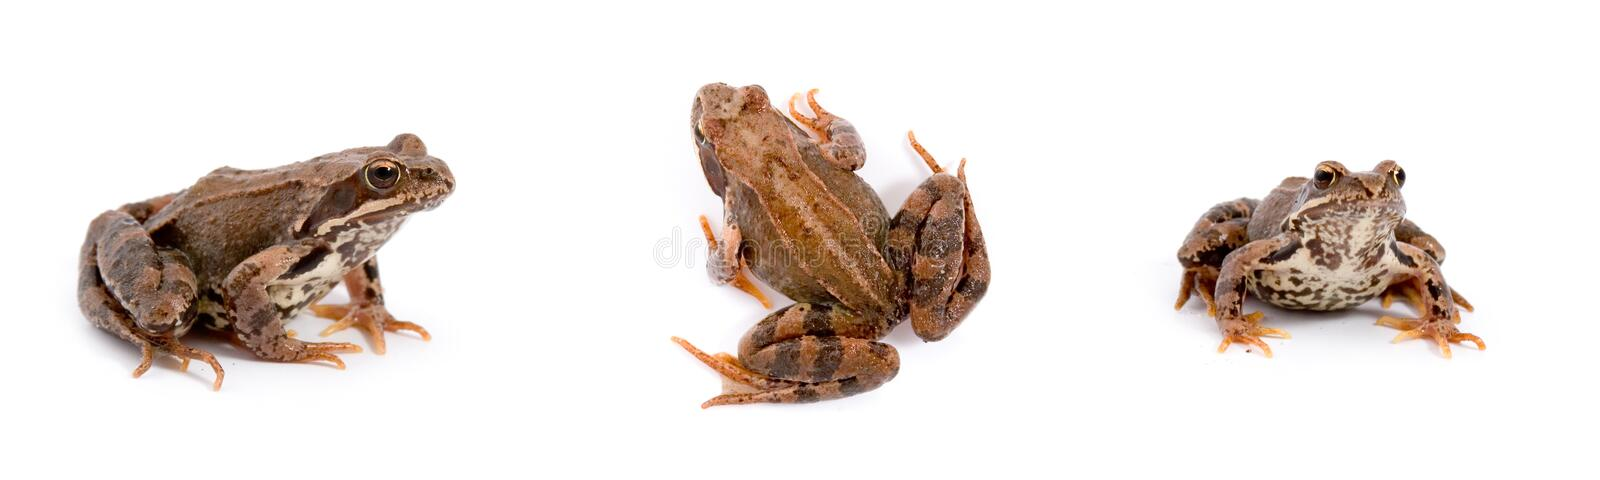 Frogs. Frog isolated on a white background, collage stock photography